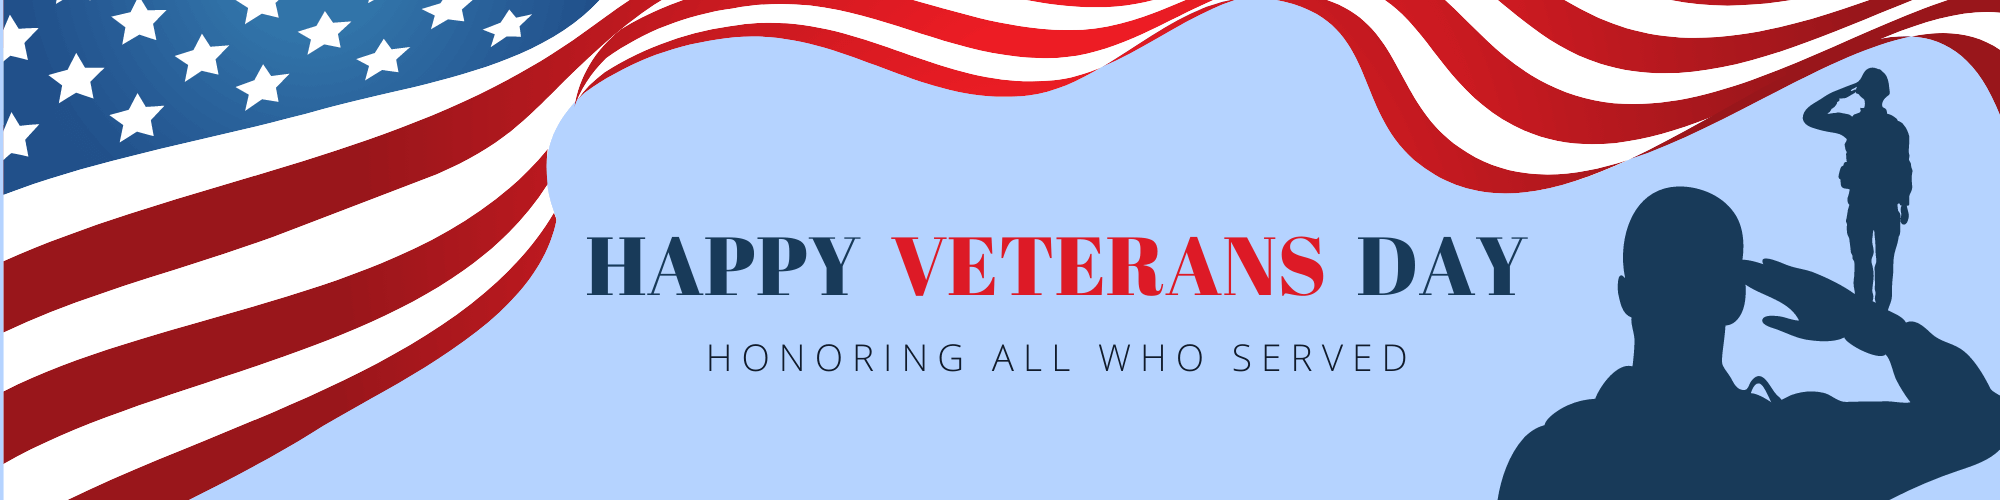 veterans-day-category-1-.png